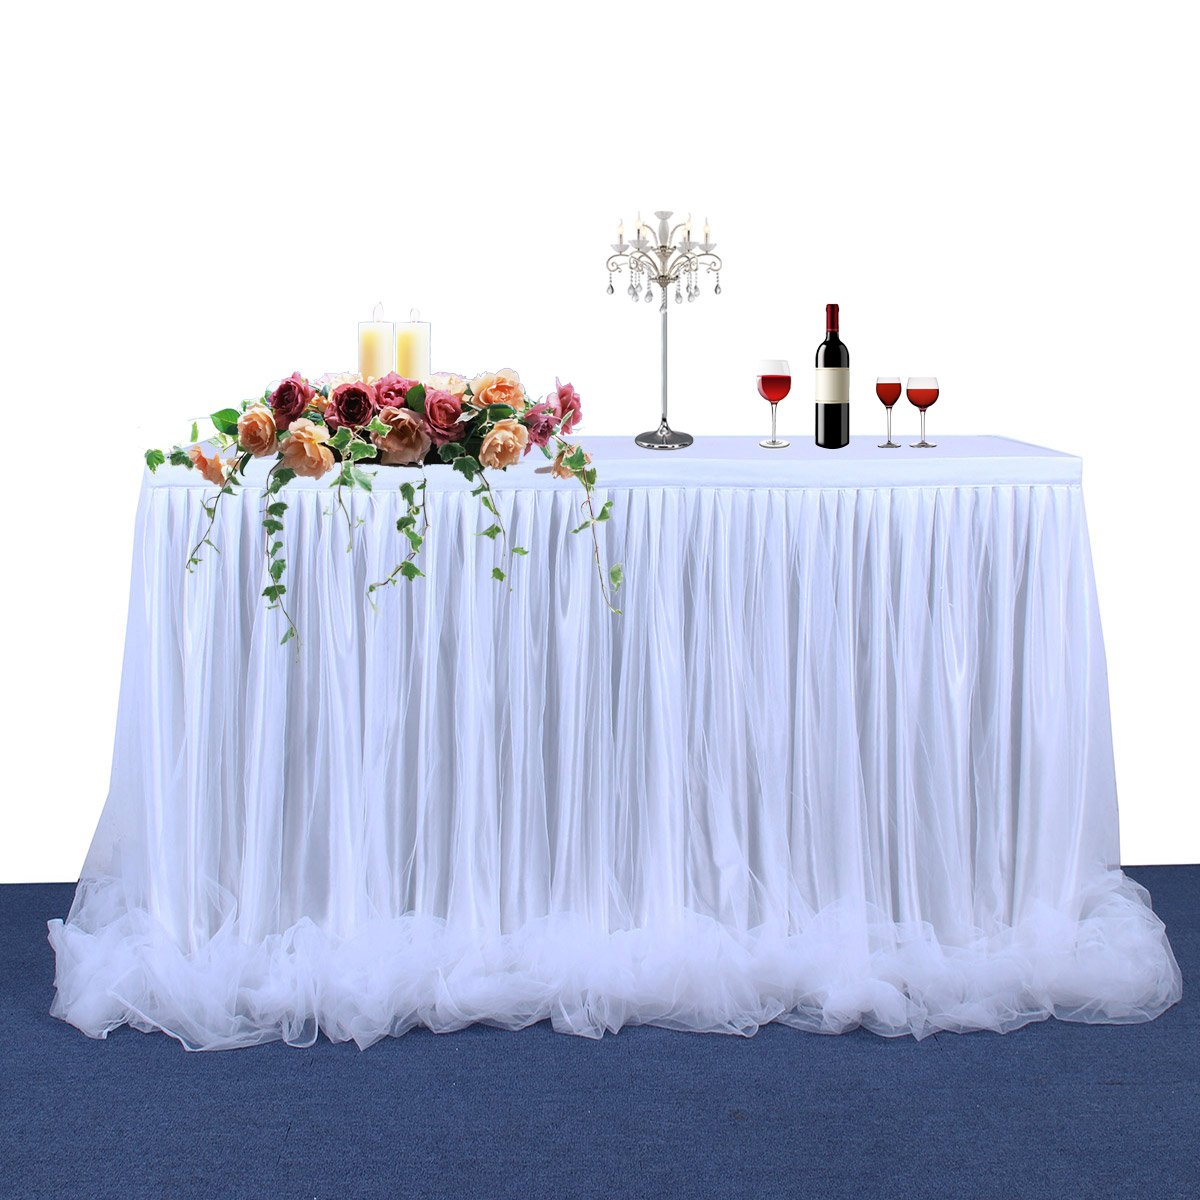 Fulu Bro 14ft White Tulle Table Skirt for Rectangle or Round Tables Long Tutu Tableware Cloth for Baby Shower Wedding Birthday Winter Party Decorations (5 Yards)